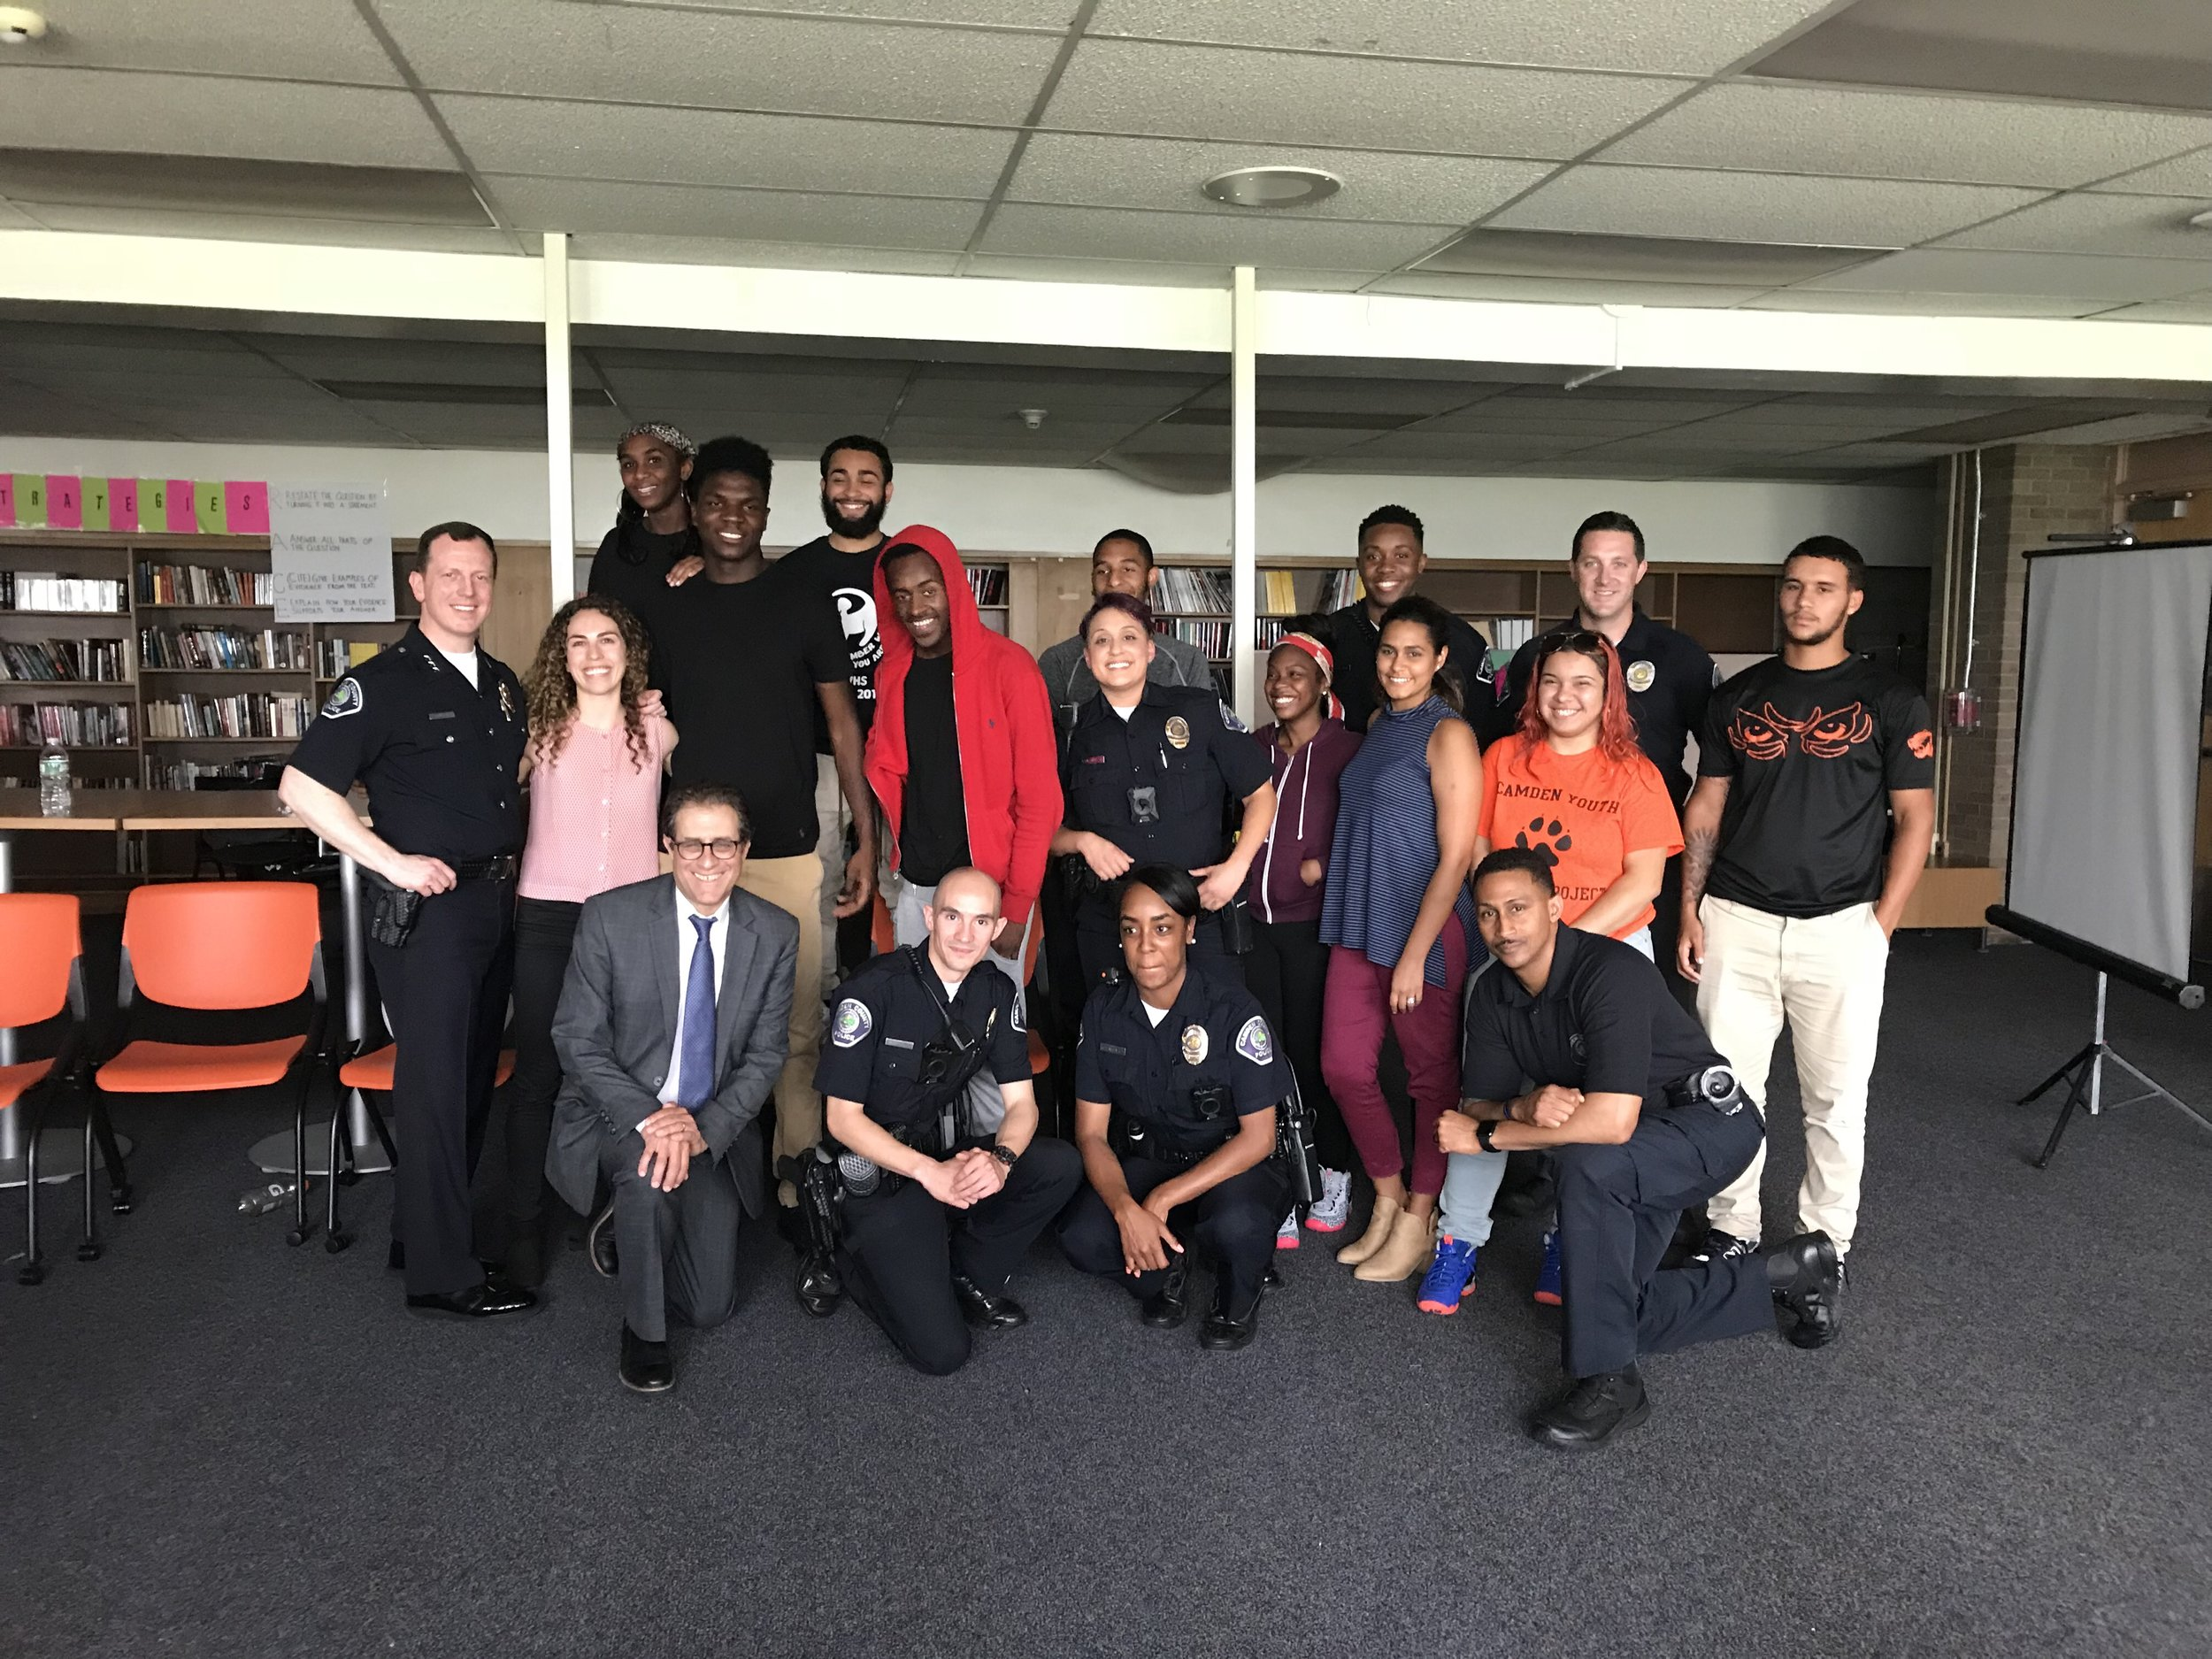 Our Camden Youth-Police Engagement Program participants celebrate with our staff and members of the Camden County Police Department, including Chief of Police Scott Thomson, after completing their final presentation.